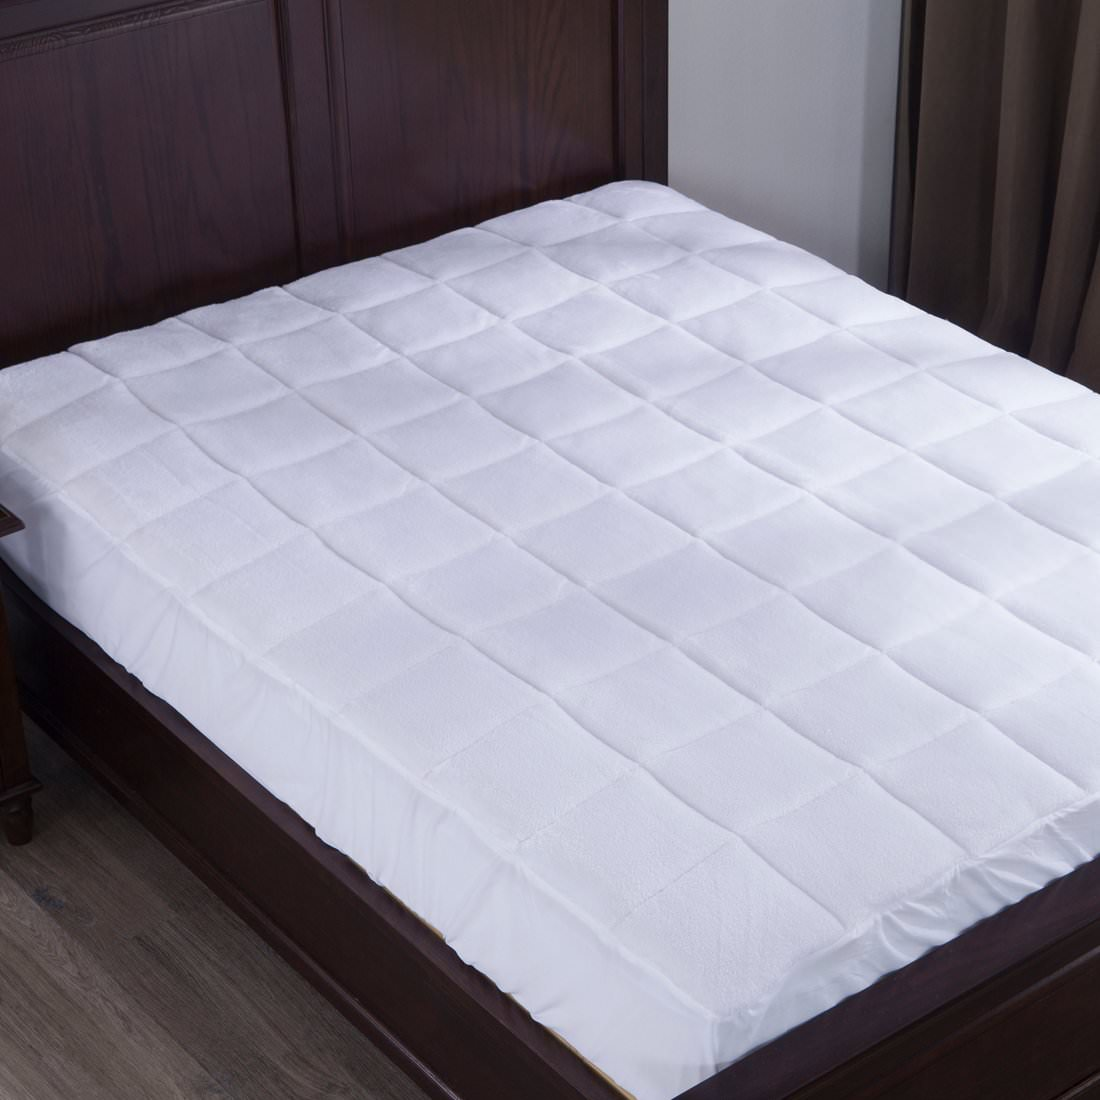 Puredown Down Alternative Mattress Pad/Topper, Plush Top, Queen size